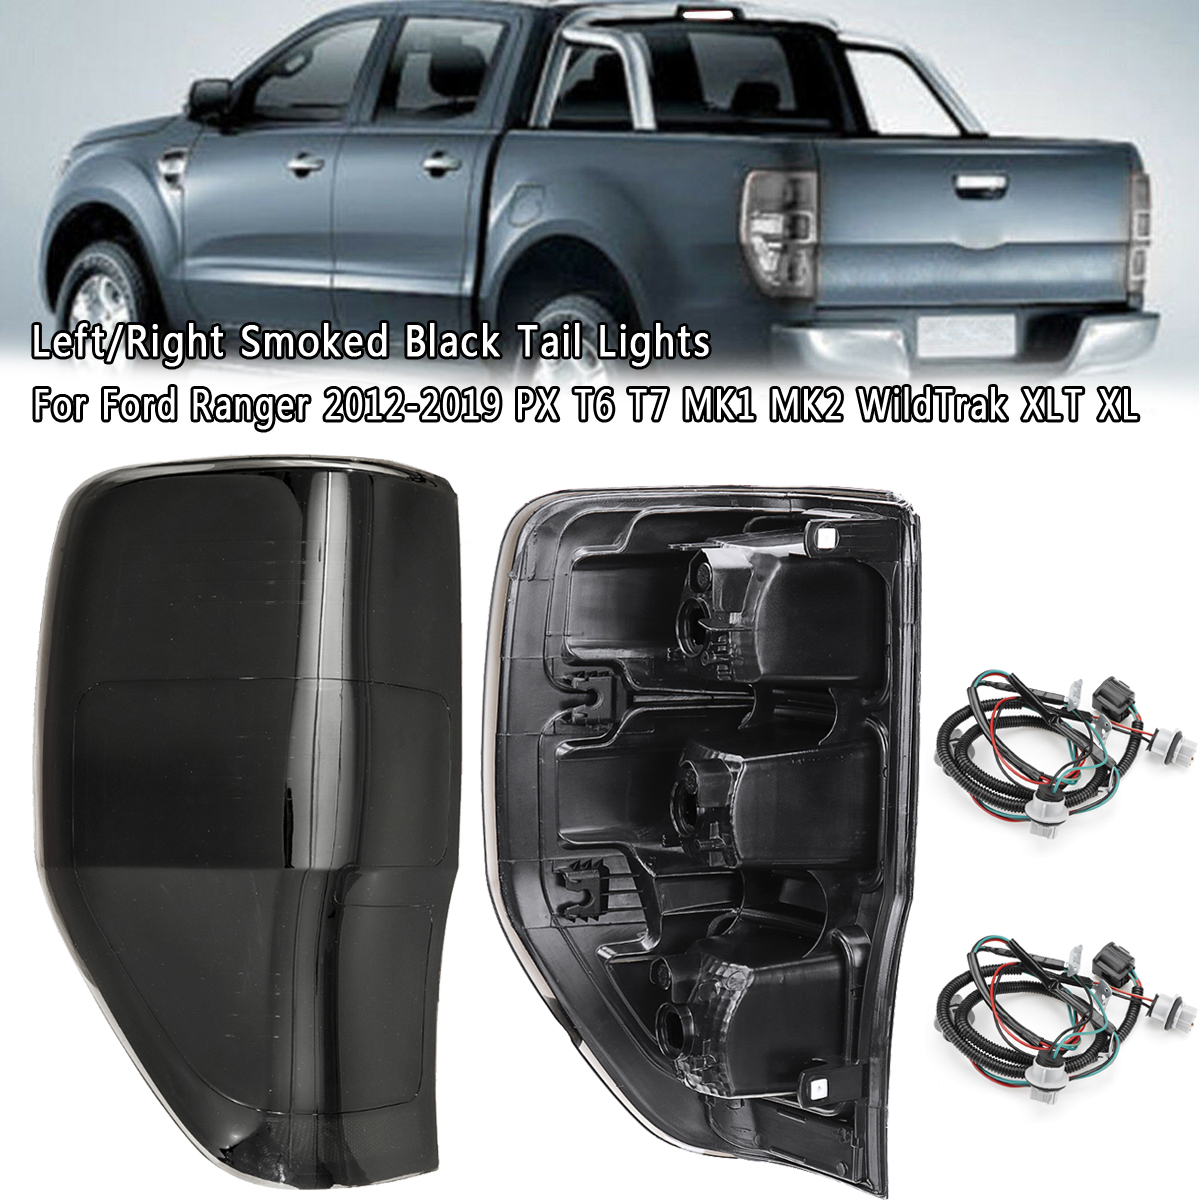 Ford Ranger Tail Light Wiring